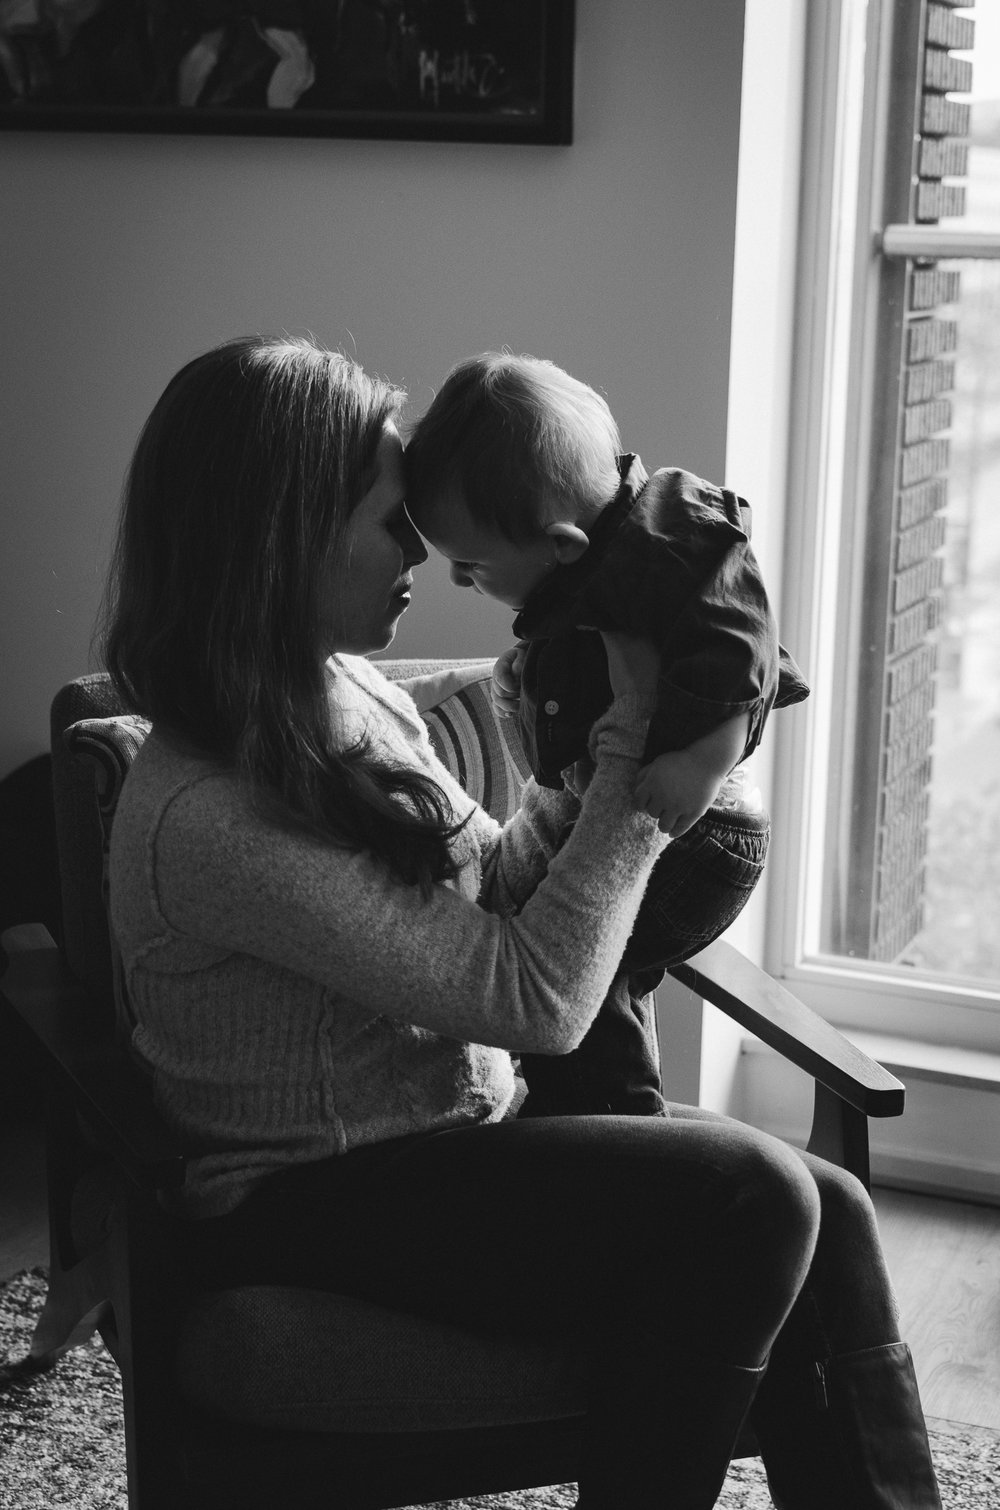 Vicky_McLachlan_Photography_Family_Newborn_Lifestyle_Photographer-1-9-5.jpg